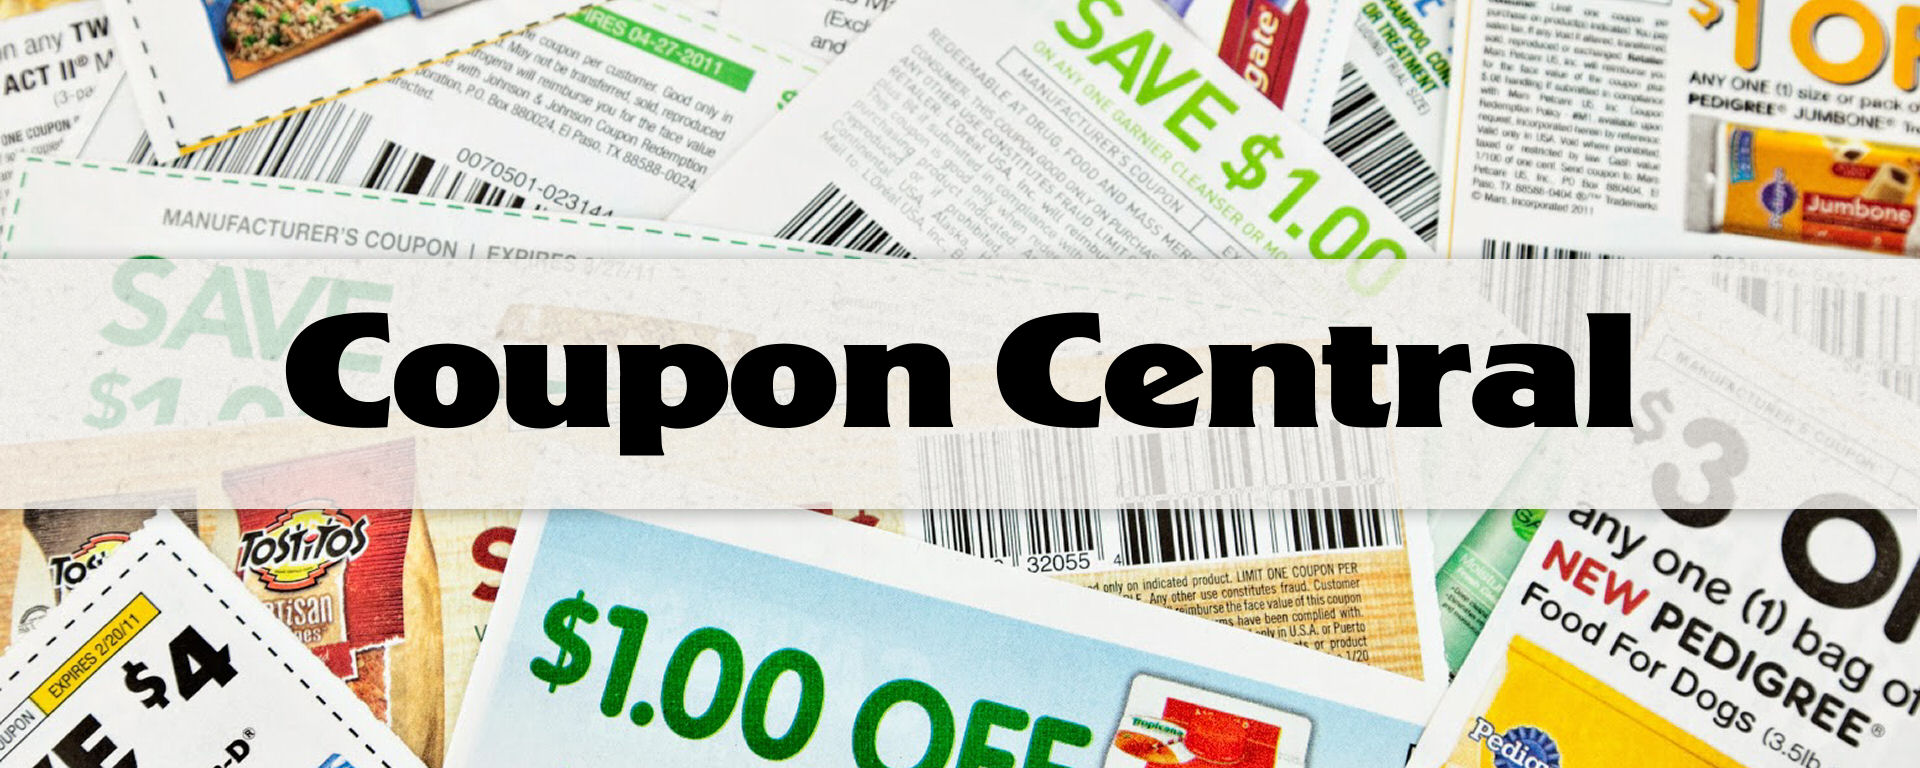 Coupon Central